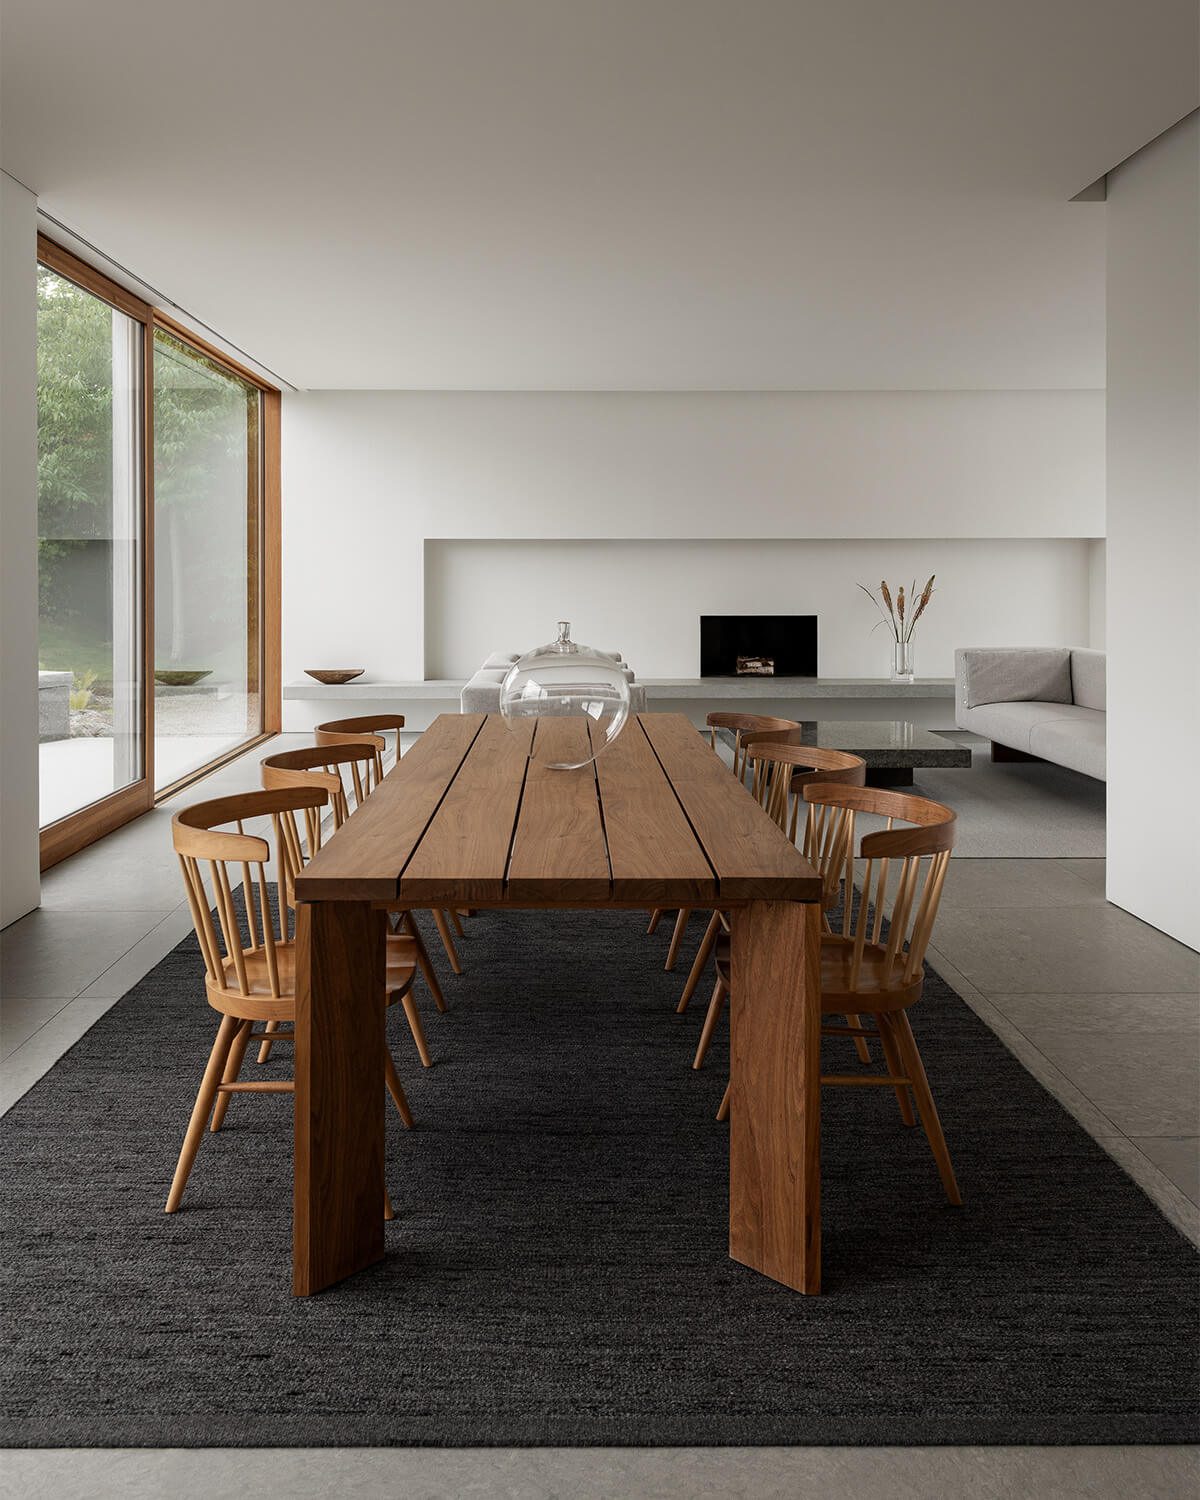 Zero in color Anthracite Mix shown in a contemporary house with a wooden dinner table and chairs.